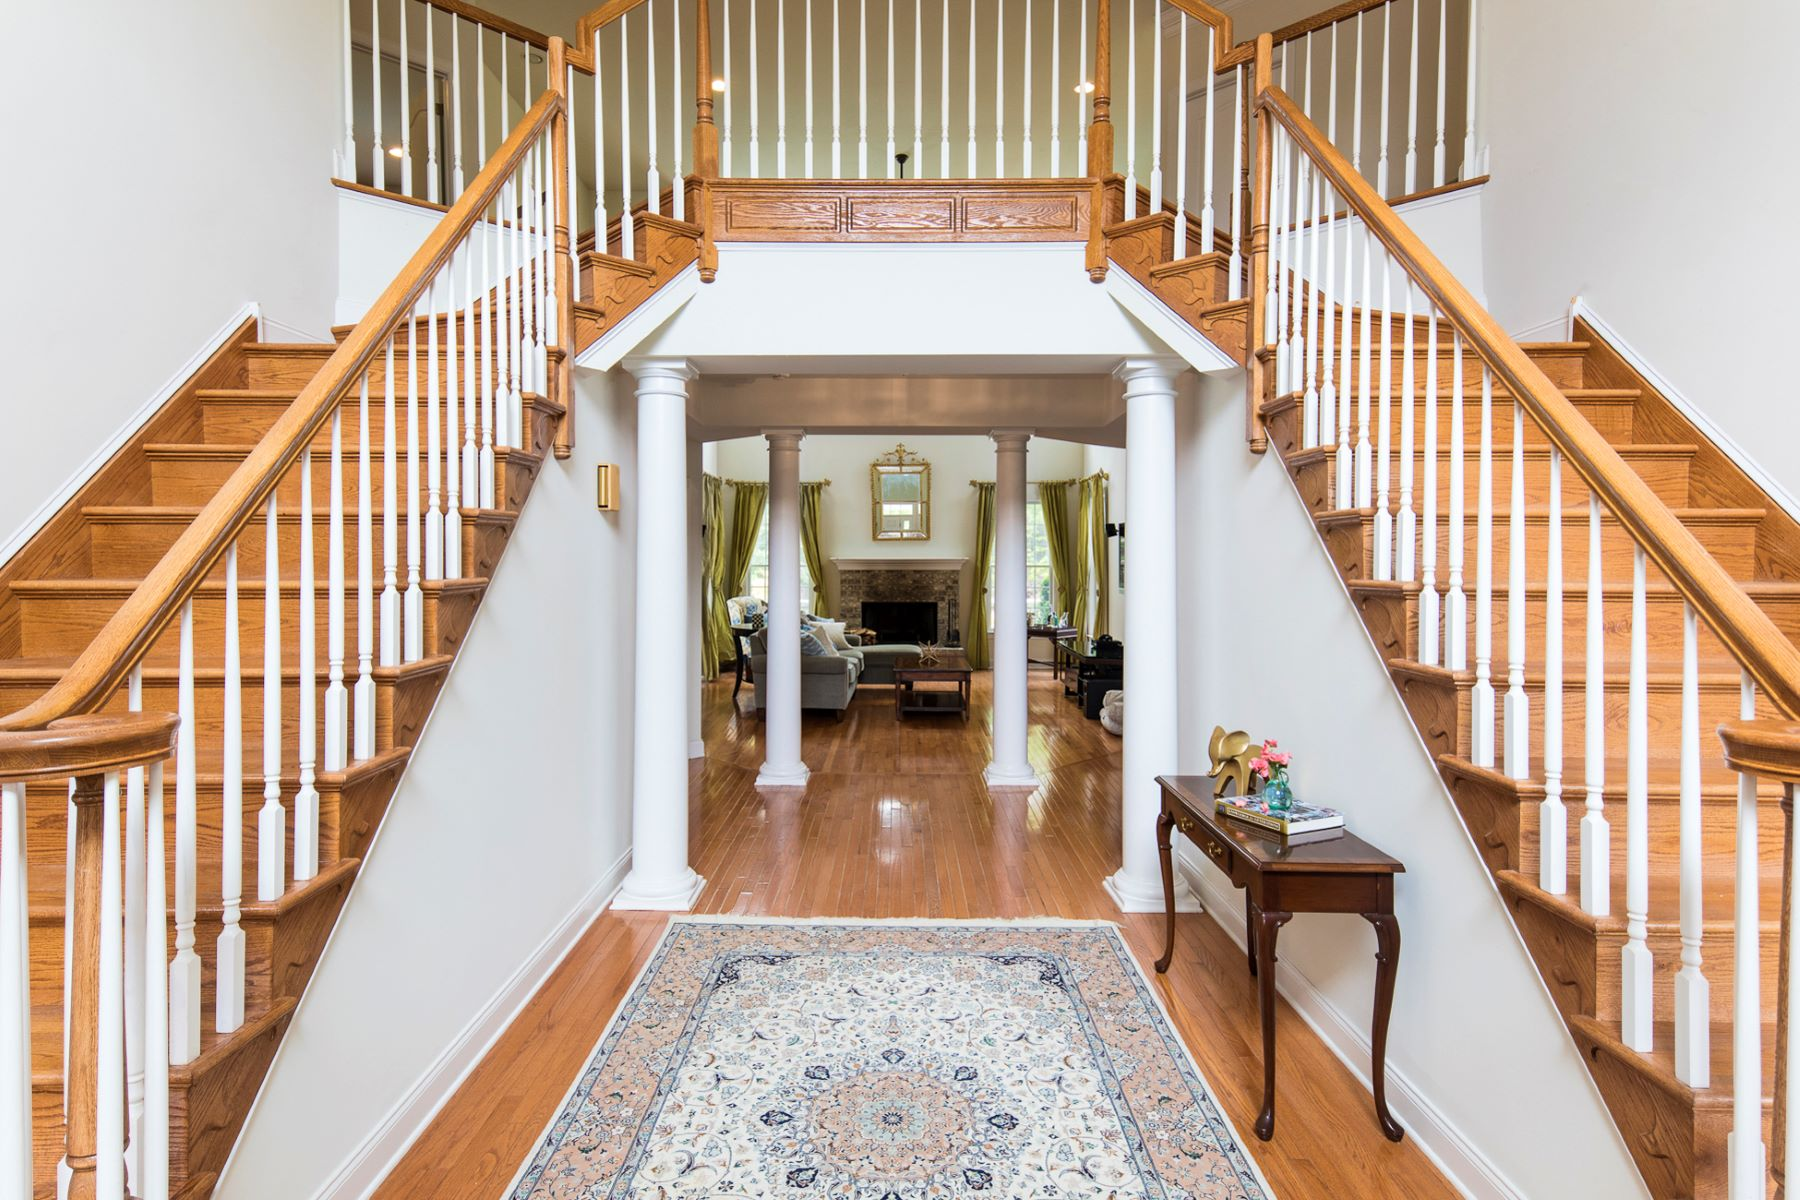 Additional photo for property listing at Room For Everyone With Five En Suite Bedrooms 68 Fox Chase Lane, Belle Mead, New Jersey 08502 United States